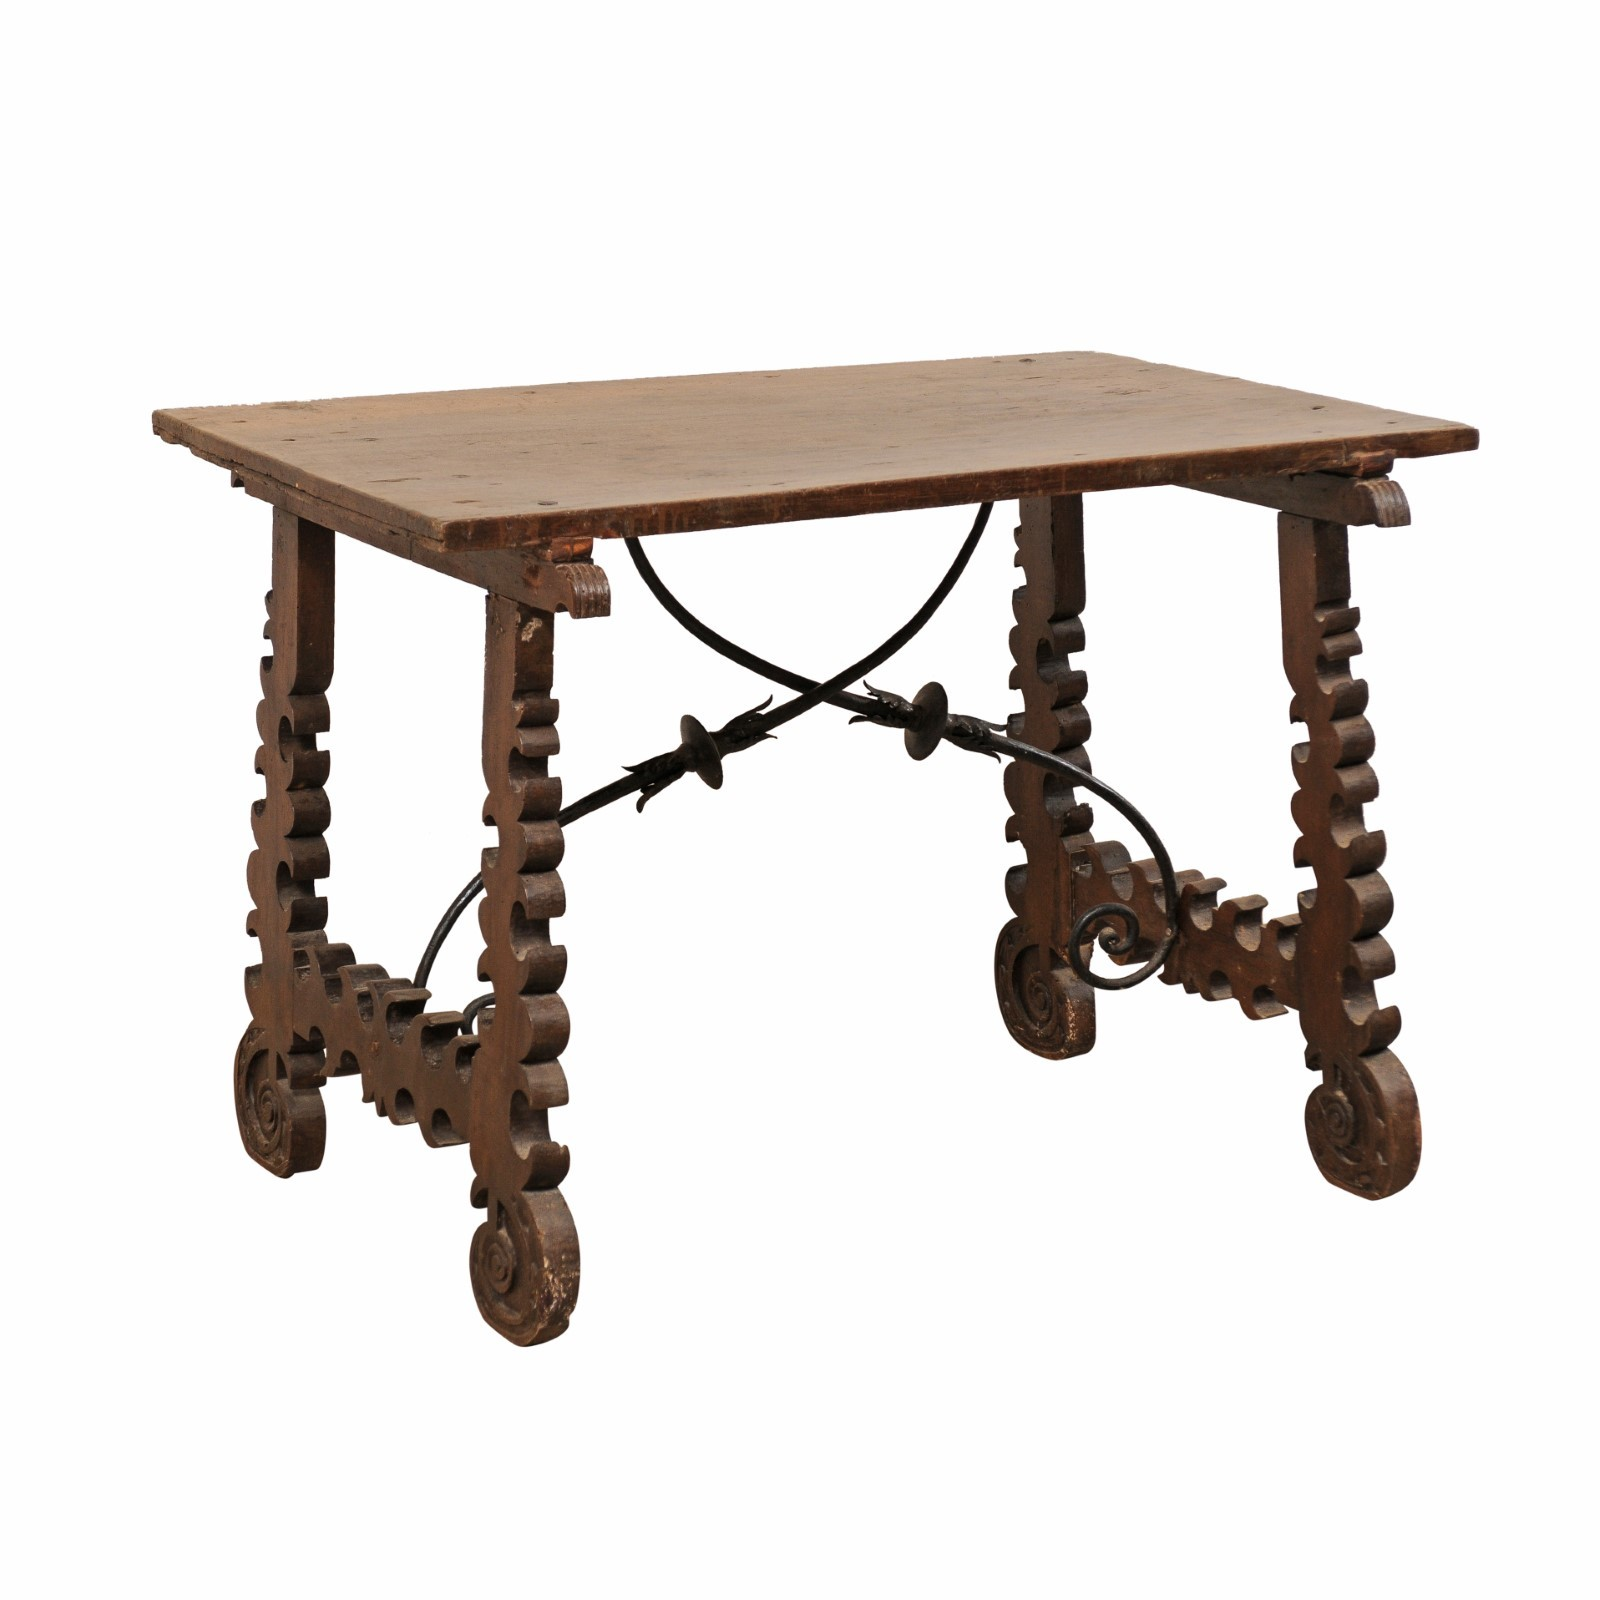 Spanish 18th C. Table w/Iron Stretcher